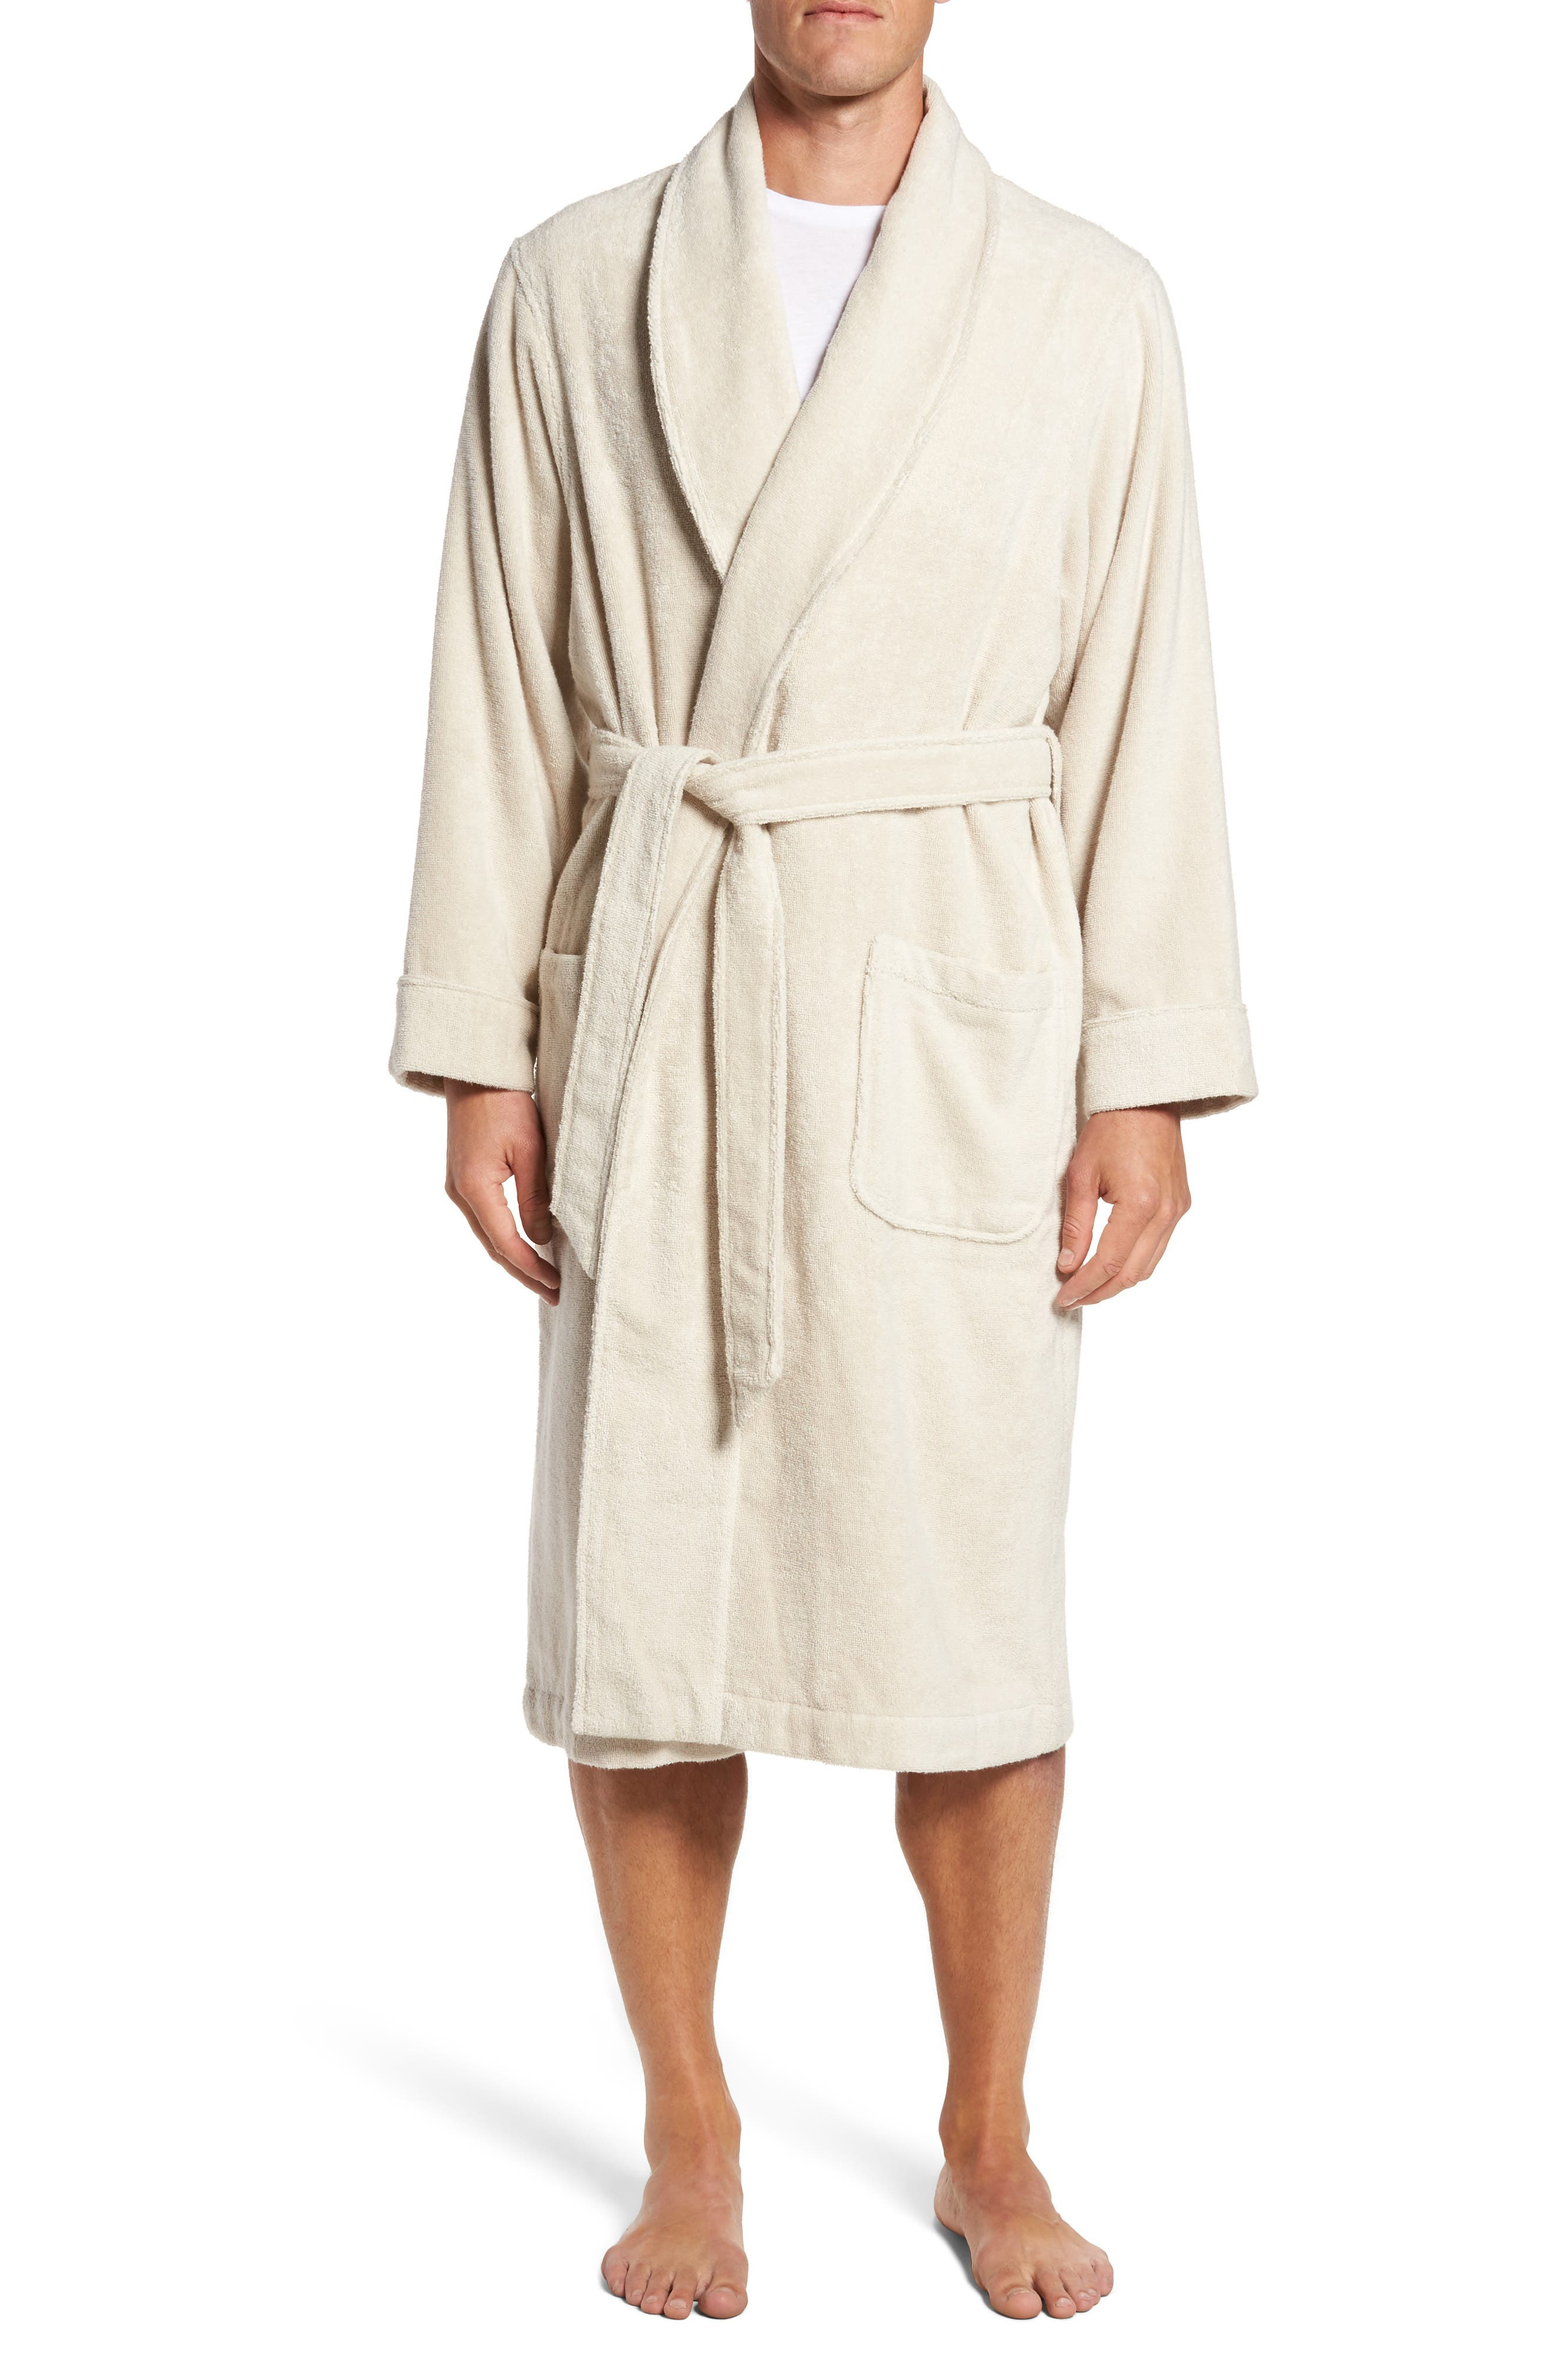 Hydro Cotton Terry Robe,                             Main thumbnail 1, color,                             Beige Oatmeal